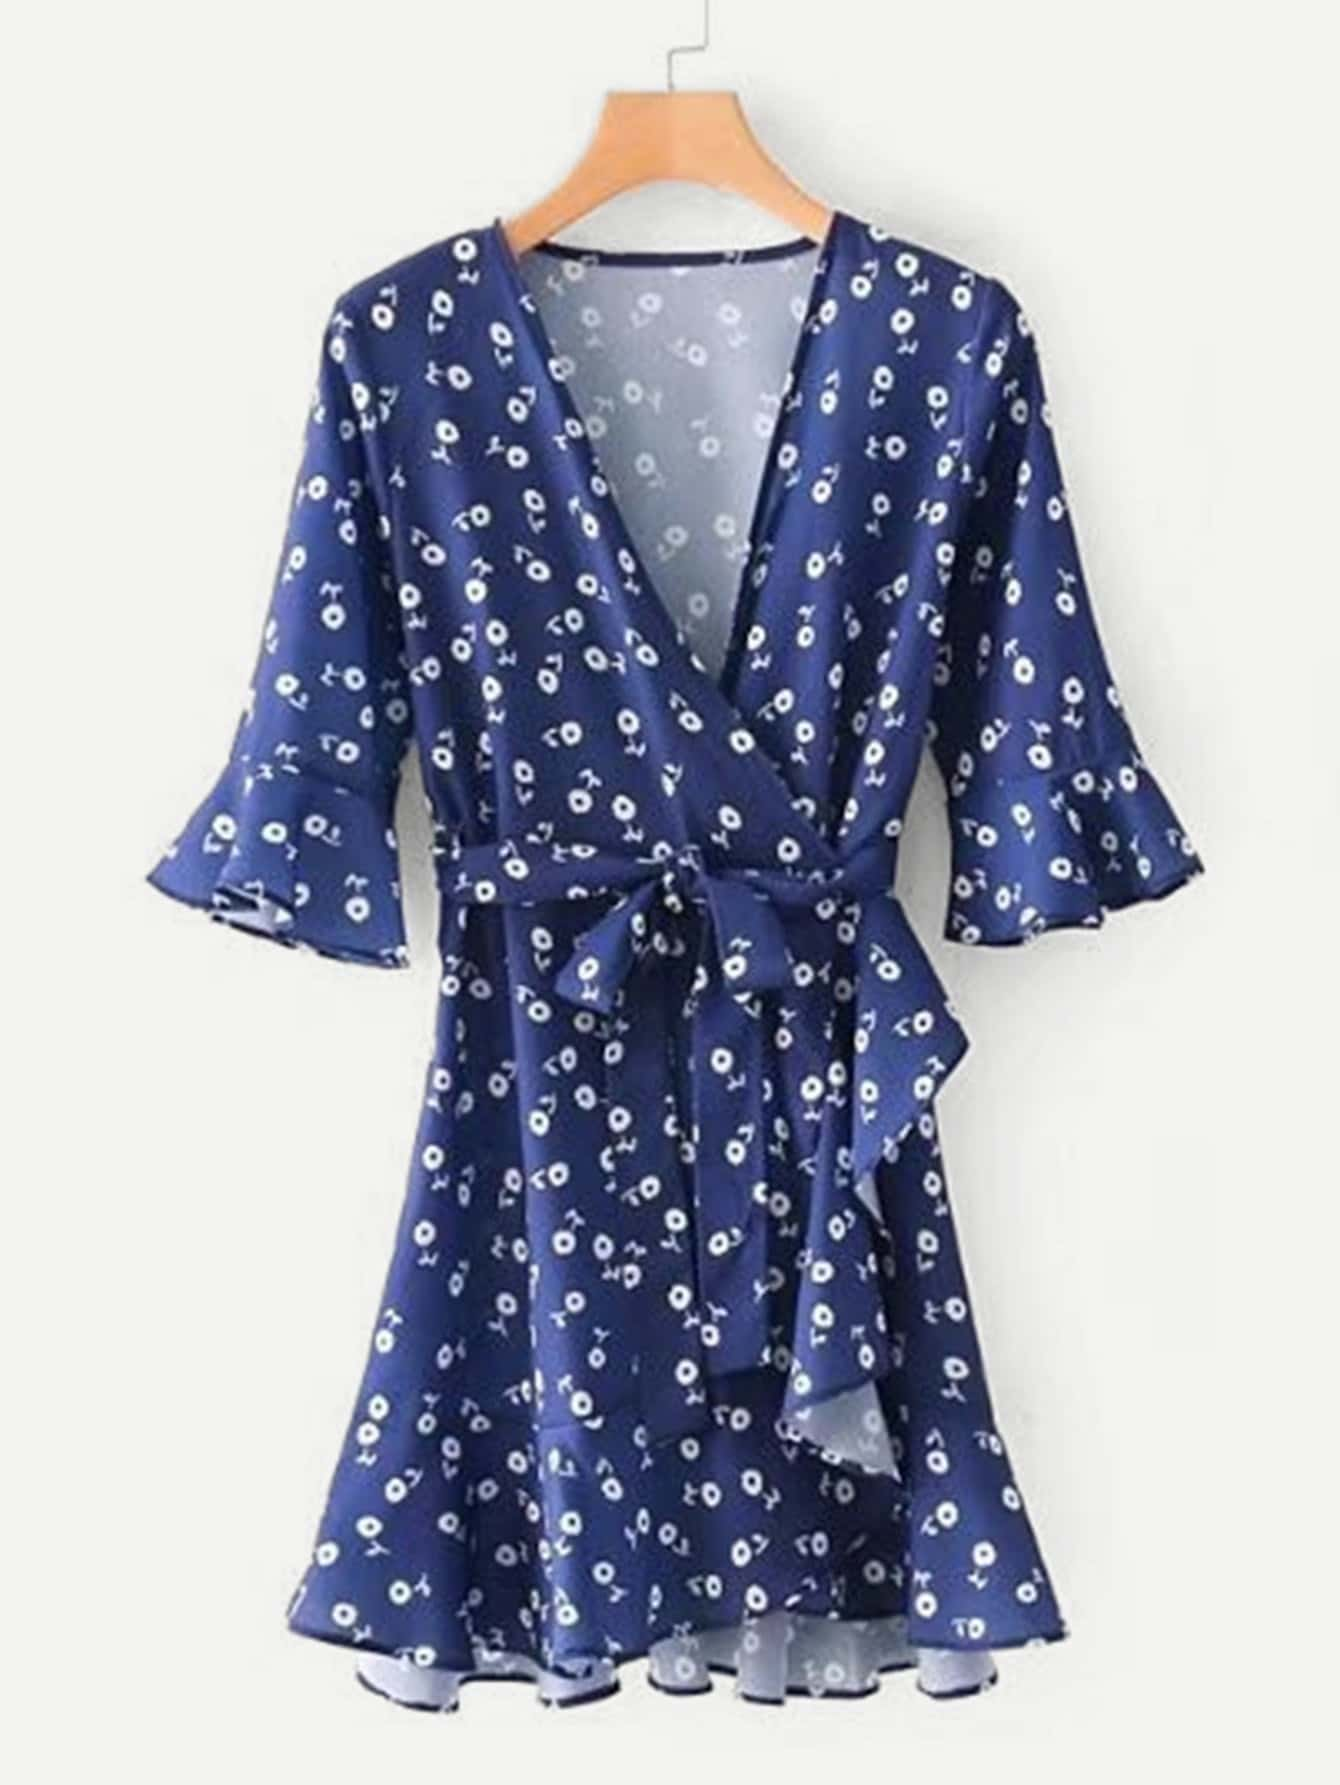 Self Tie Calico Print Wrap Dress calico print shirt dress with self tie